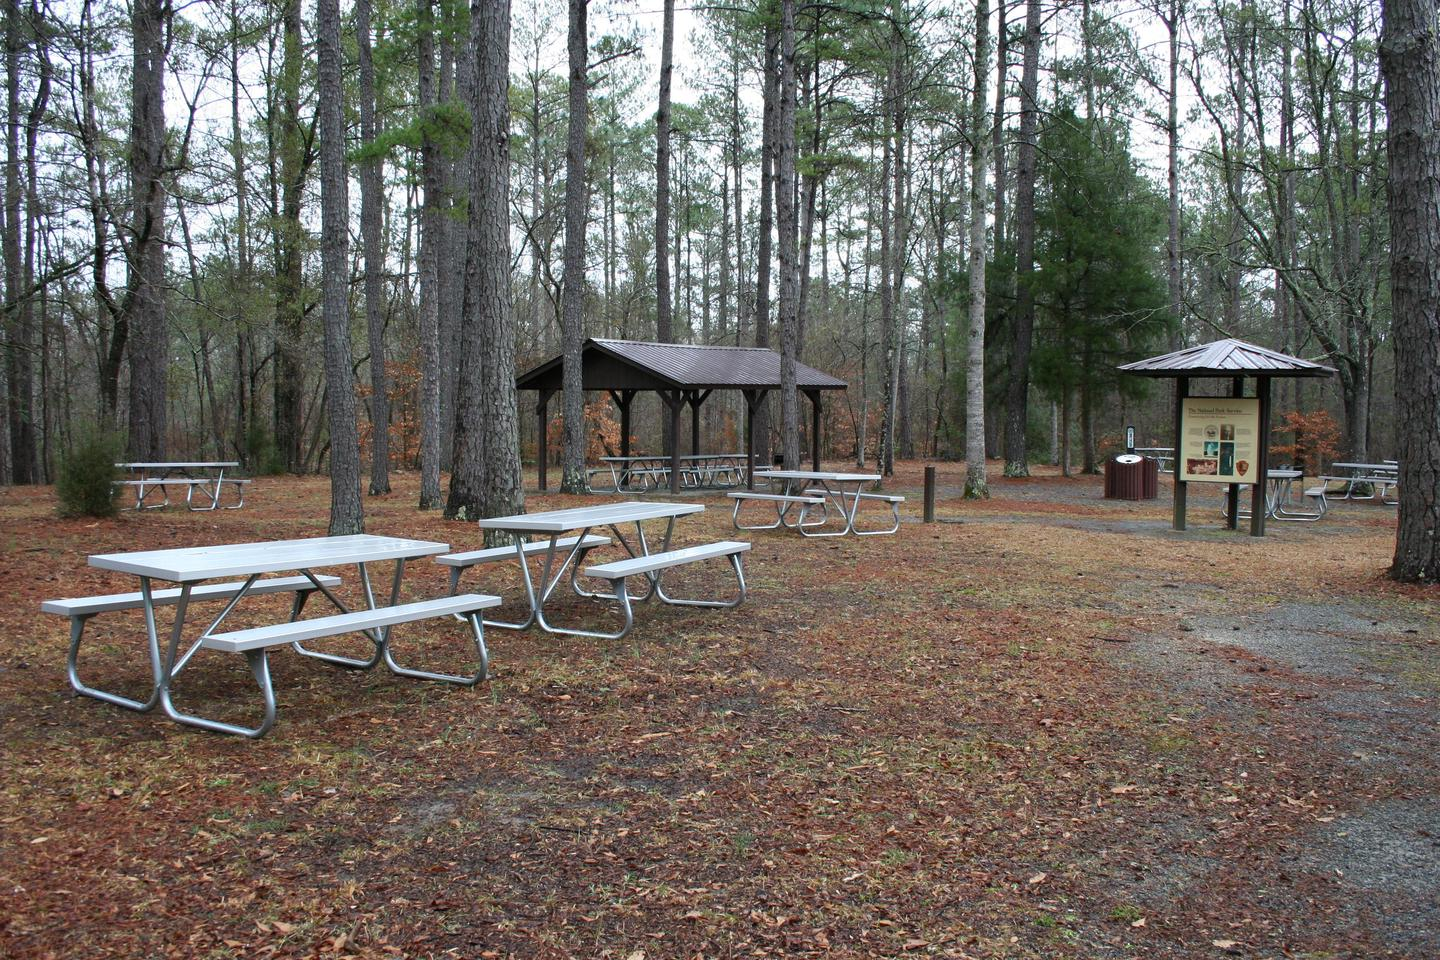 Picnic AreaPicnic tables and pavilions are available free on a first come-first served basis, or may be reserved for a fee.